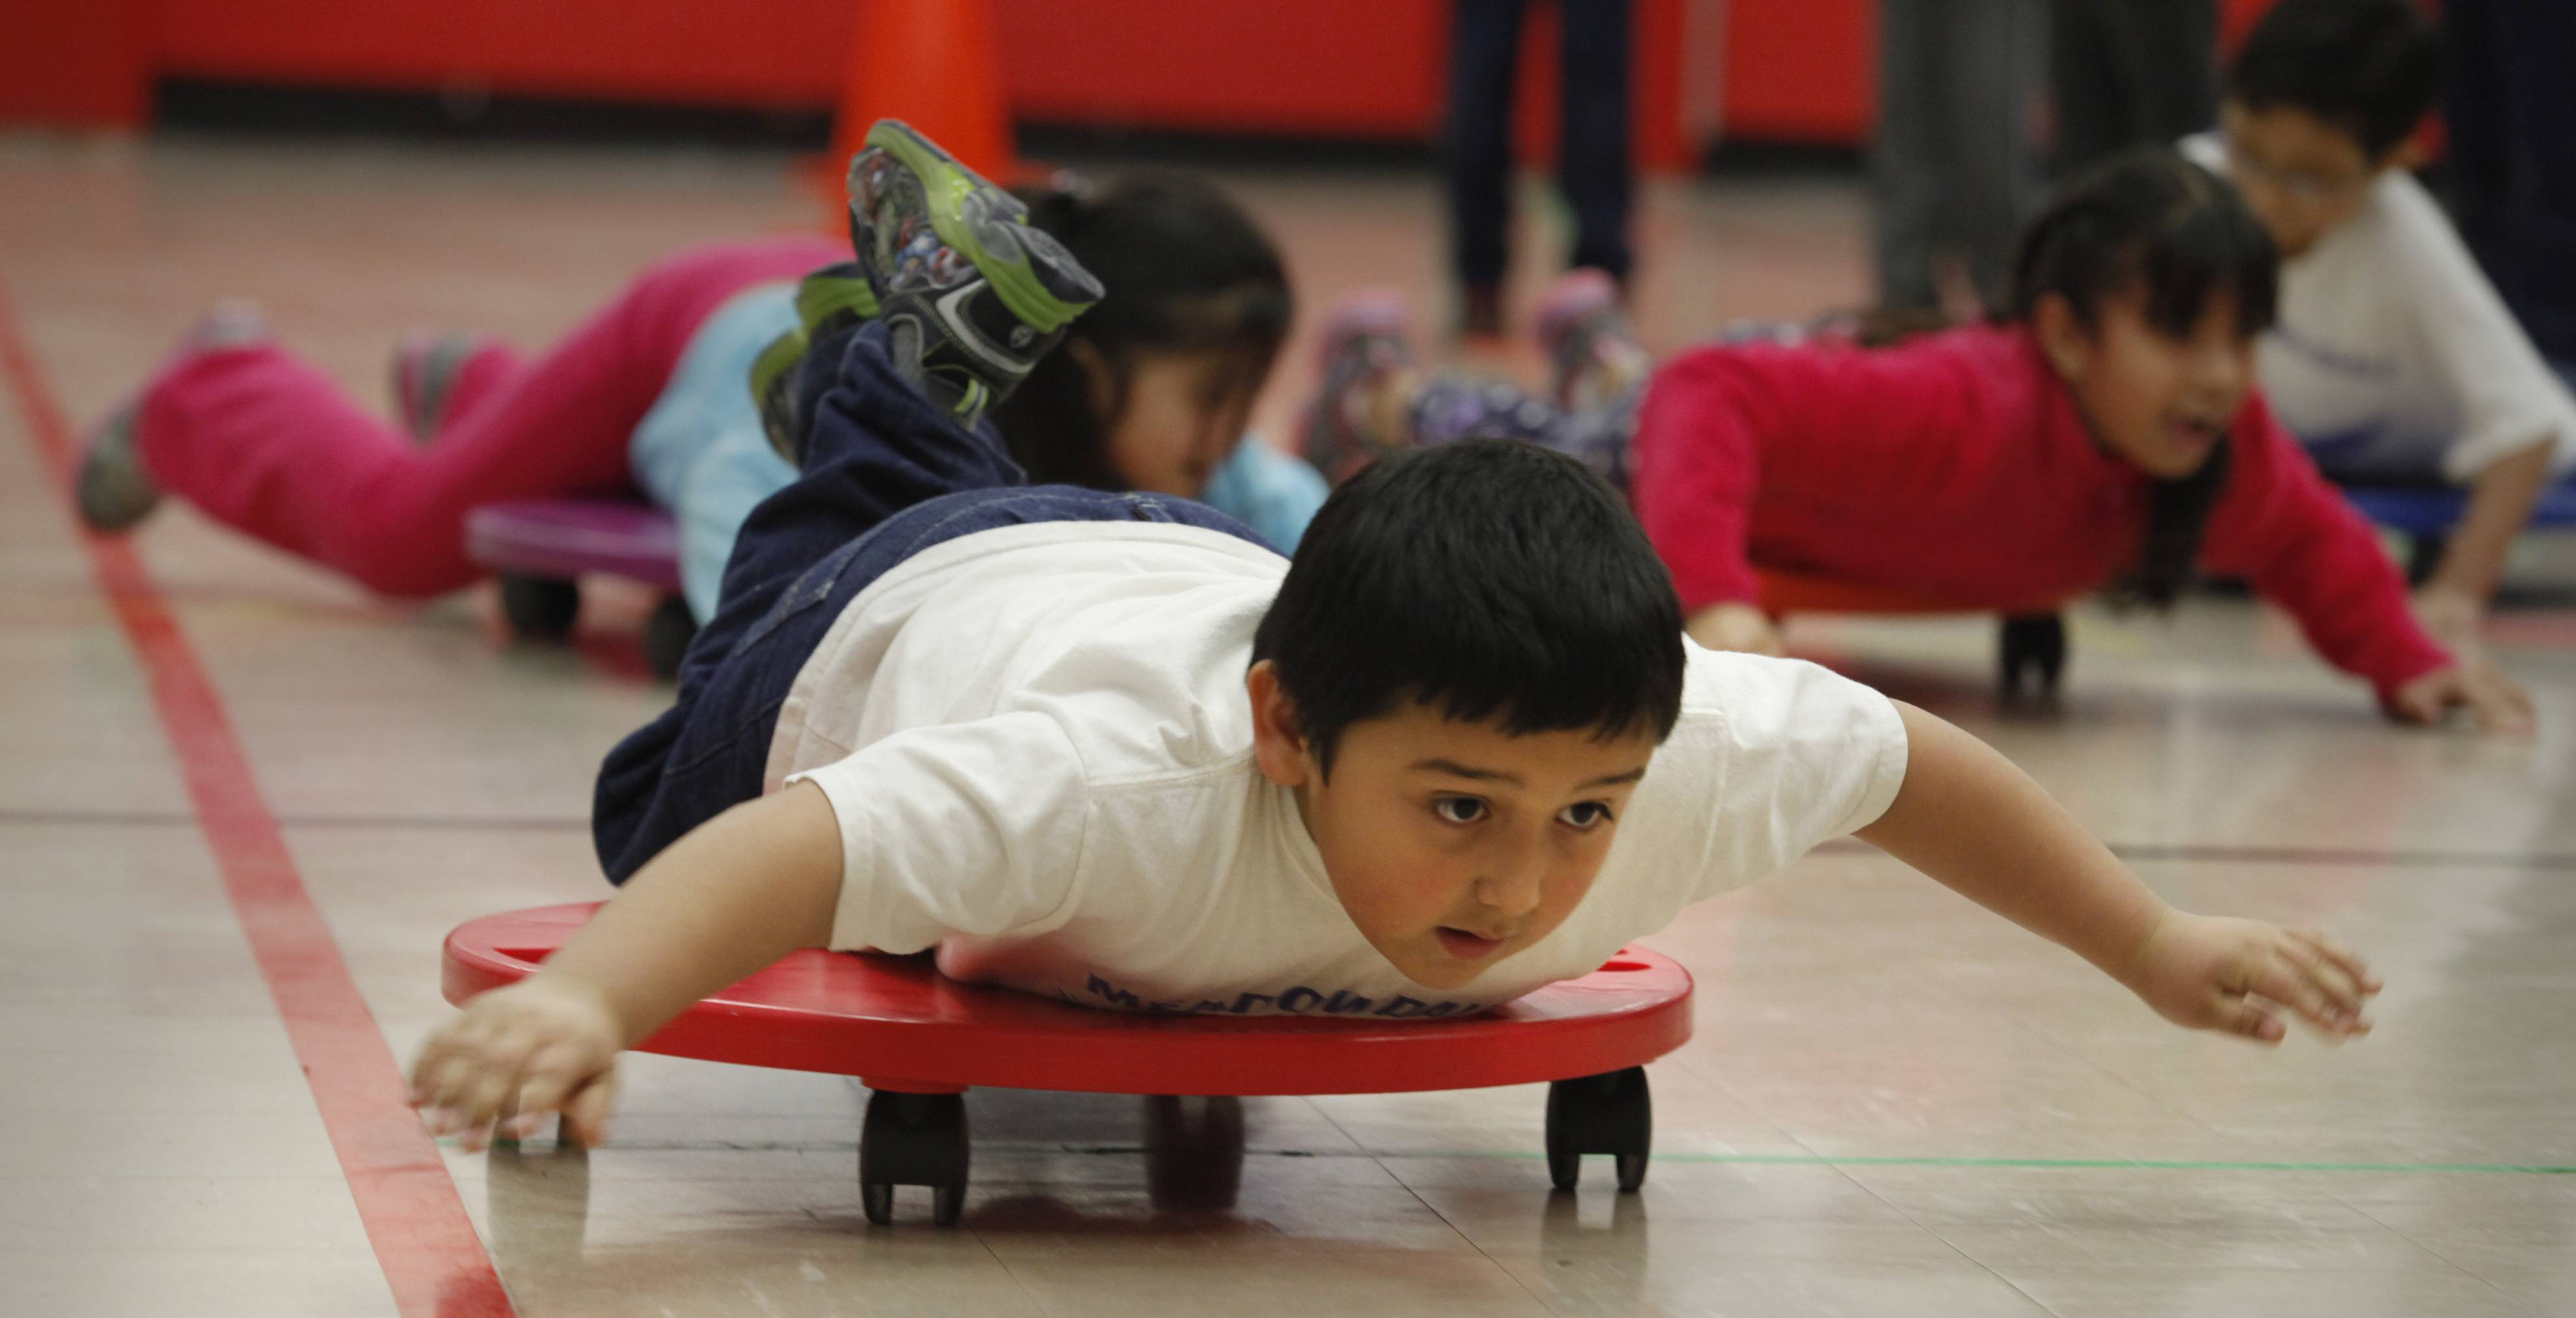 Juan Tinajeros, a first-grader at Meadowdale Elementary School in Carpentersville, sails across the floor on a scooter as he and his classmates try out their own version of skeleton Friday, as part of an Olympics unit. Next week, students will learn about cross-country skiing.